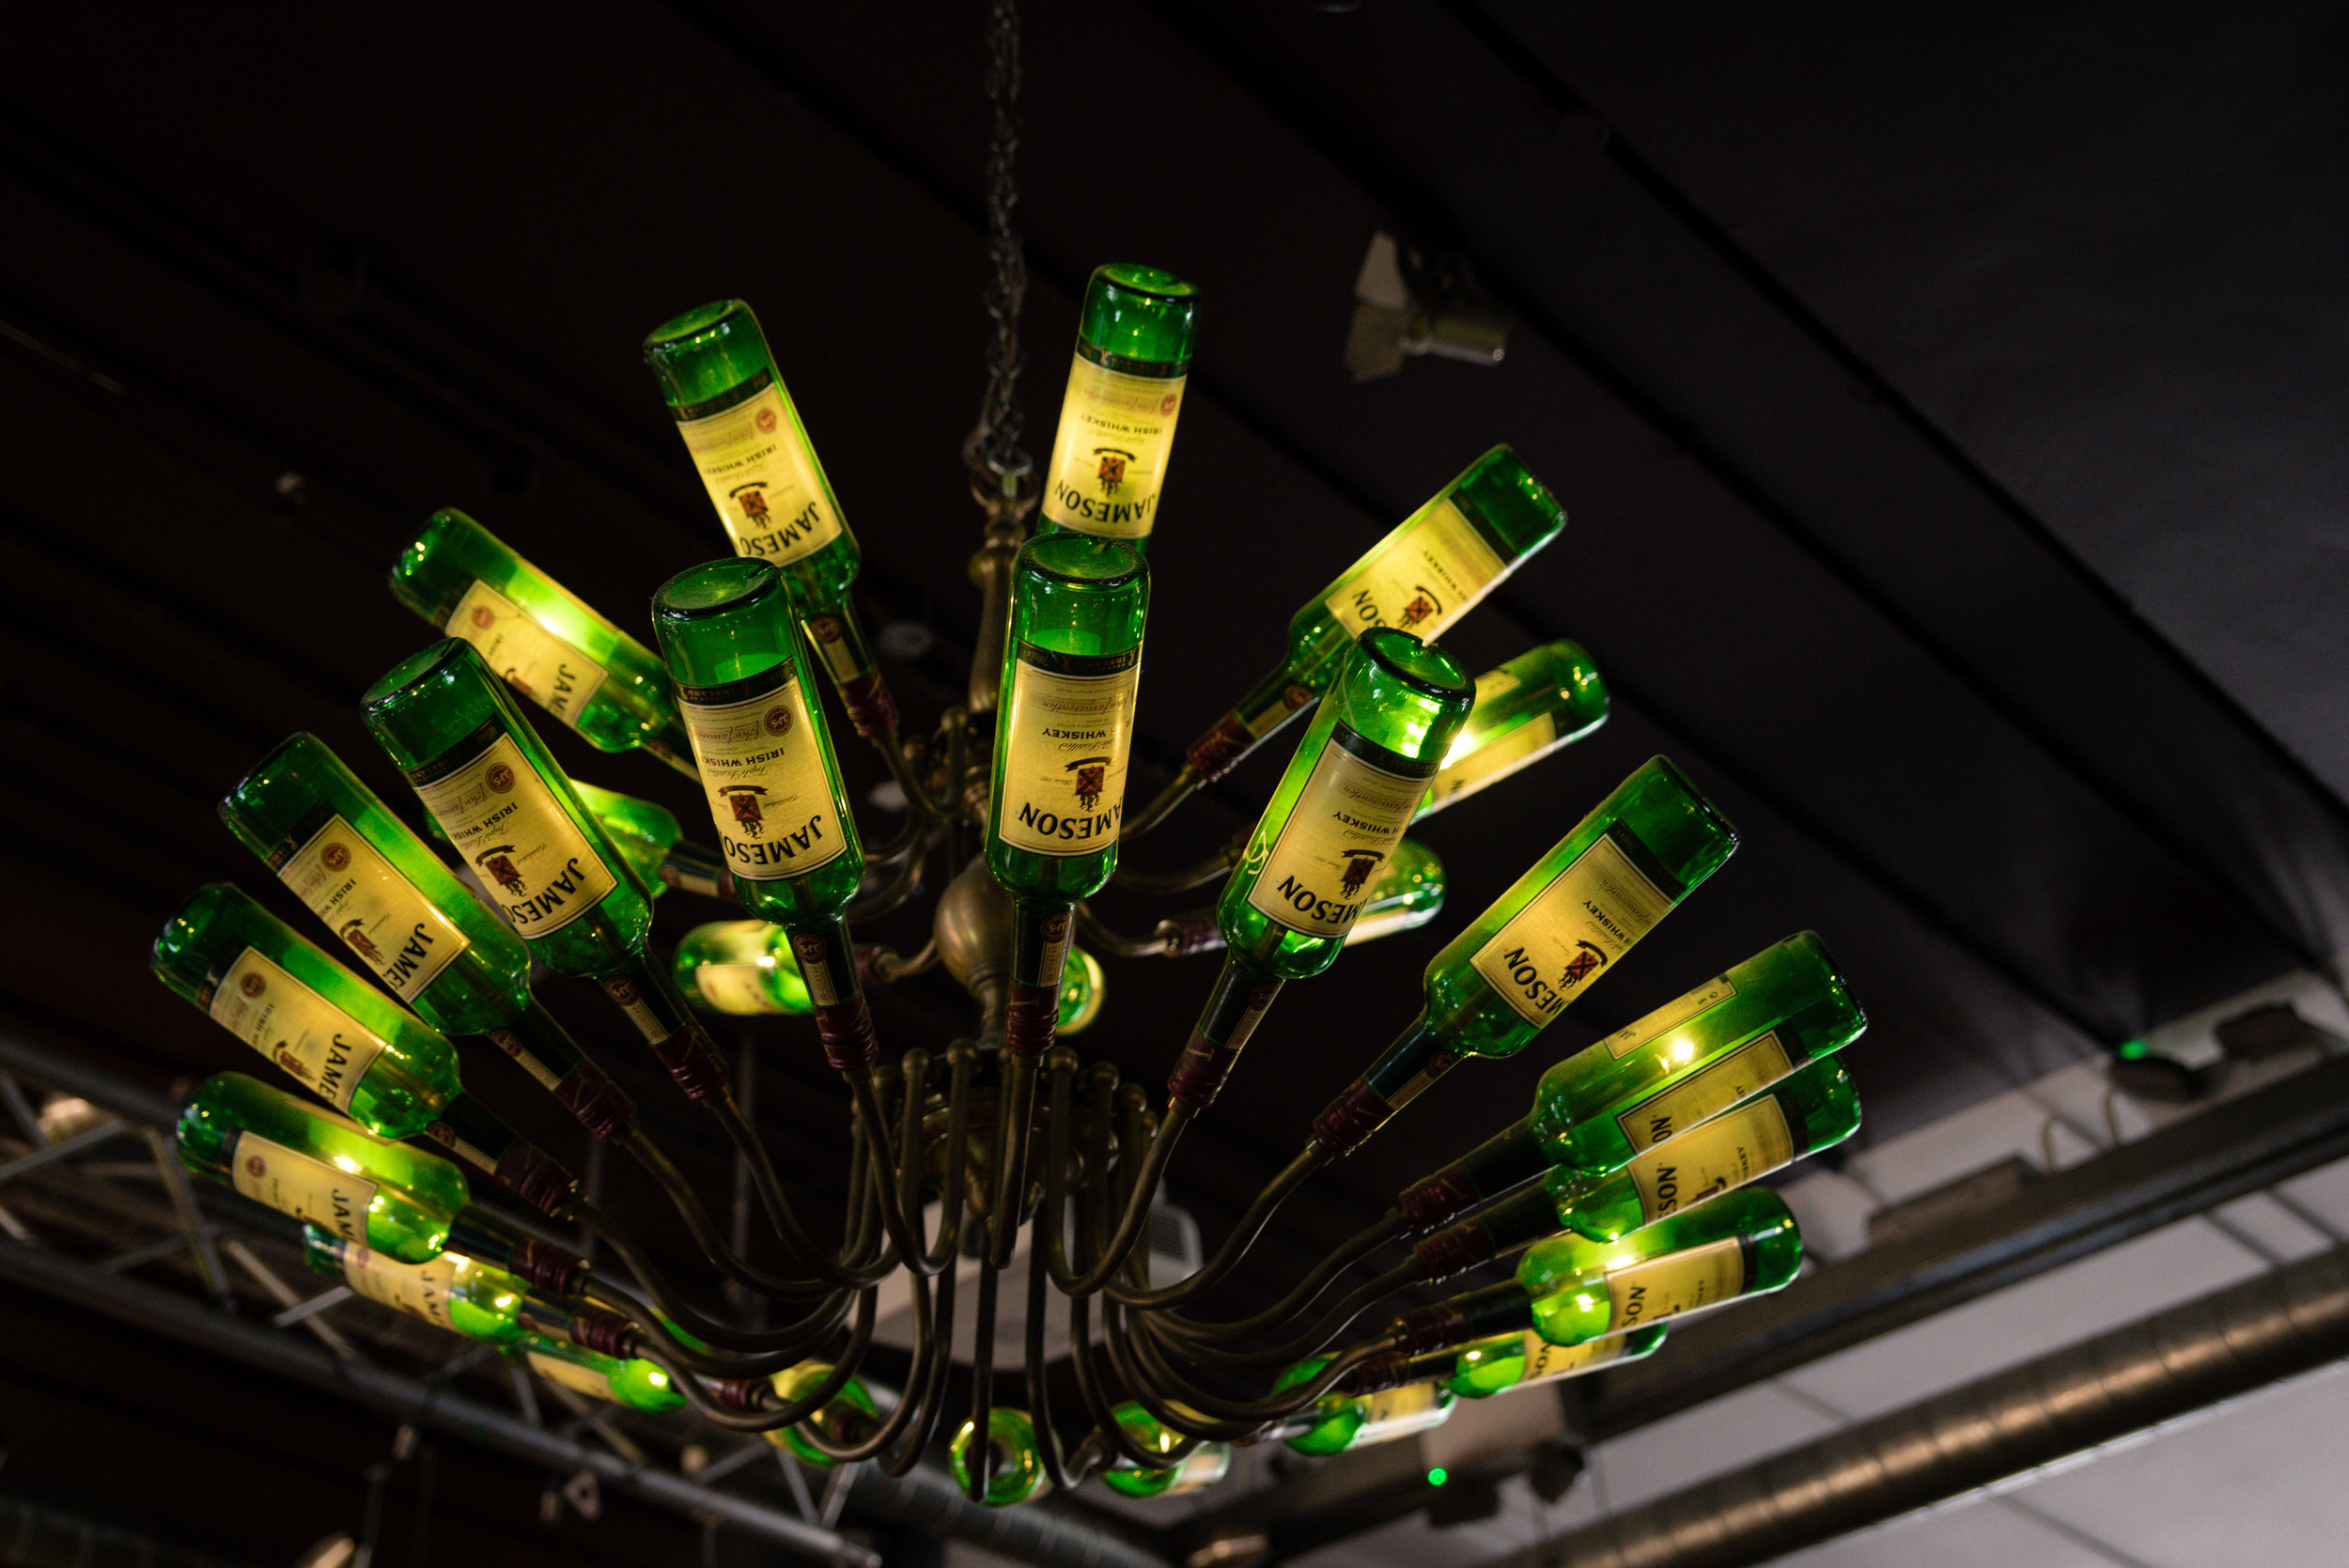 The Hostel features a Jameson chandelier. How cool is that!